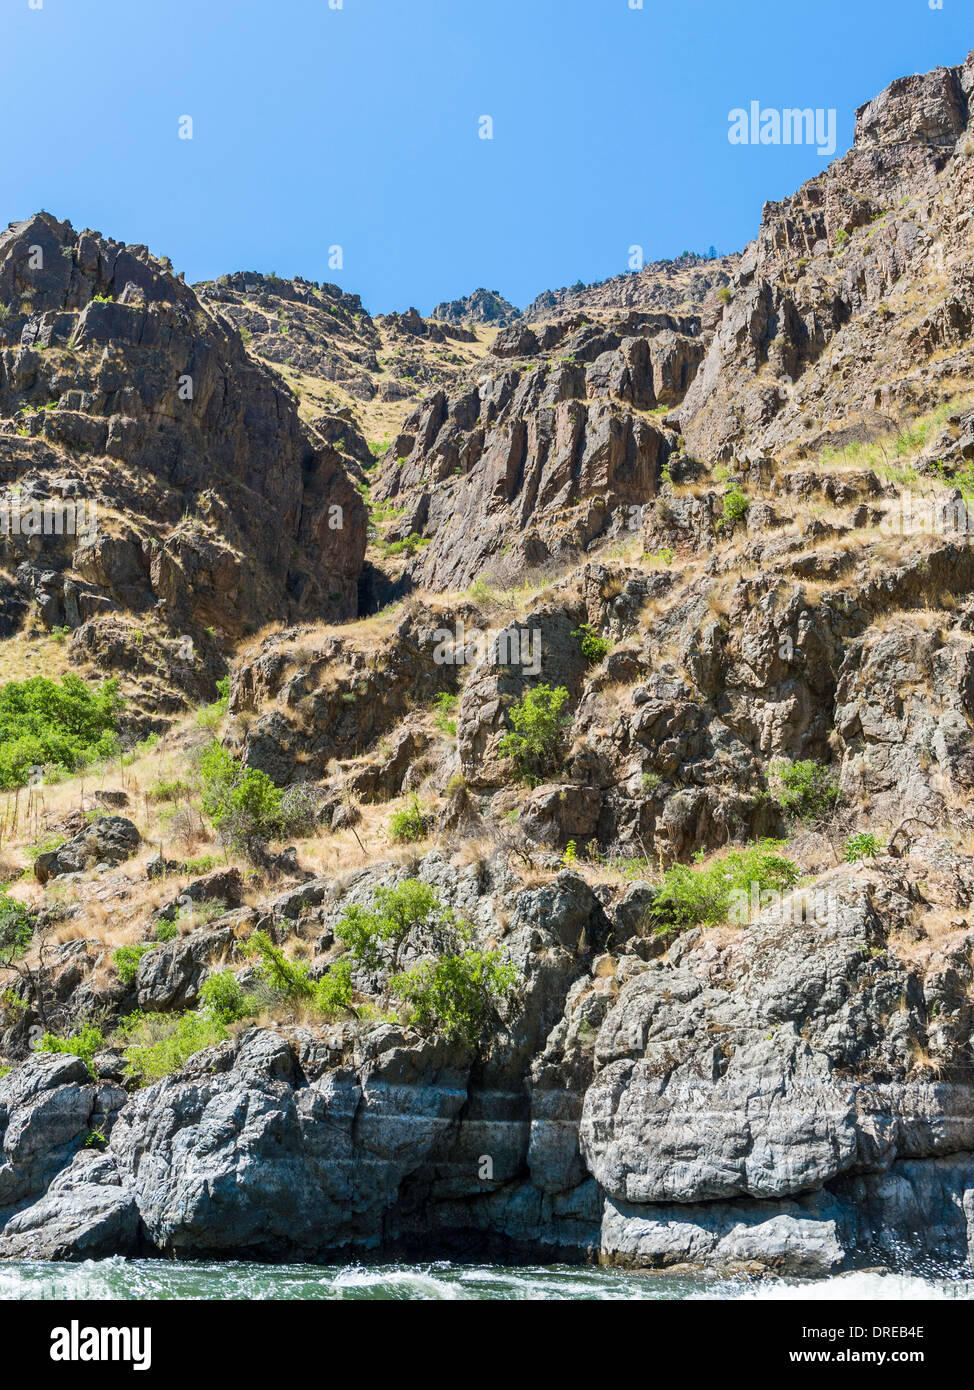 Scenery in Hells Canyon, on the Snake River, forming the border between Idaho and Oregon, USA. - Stock Image